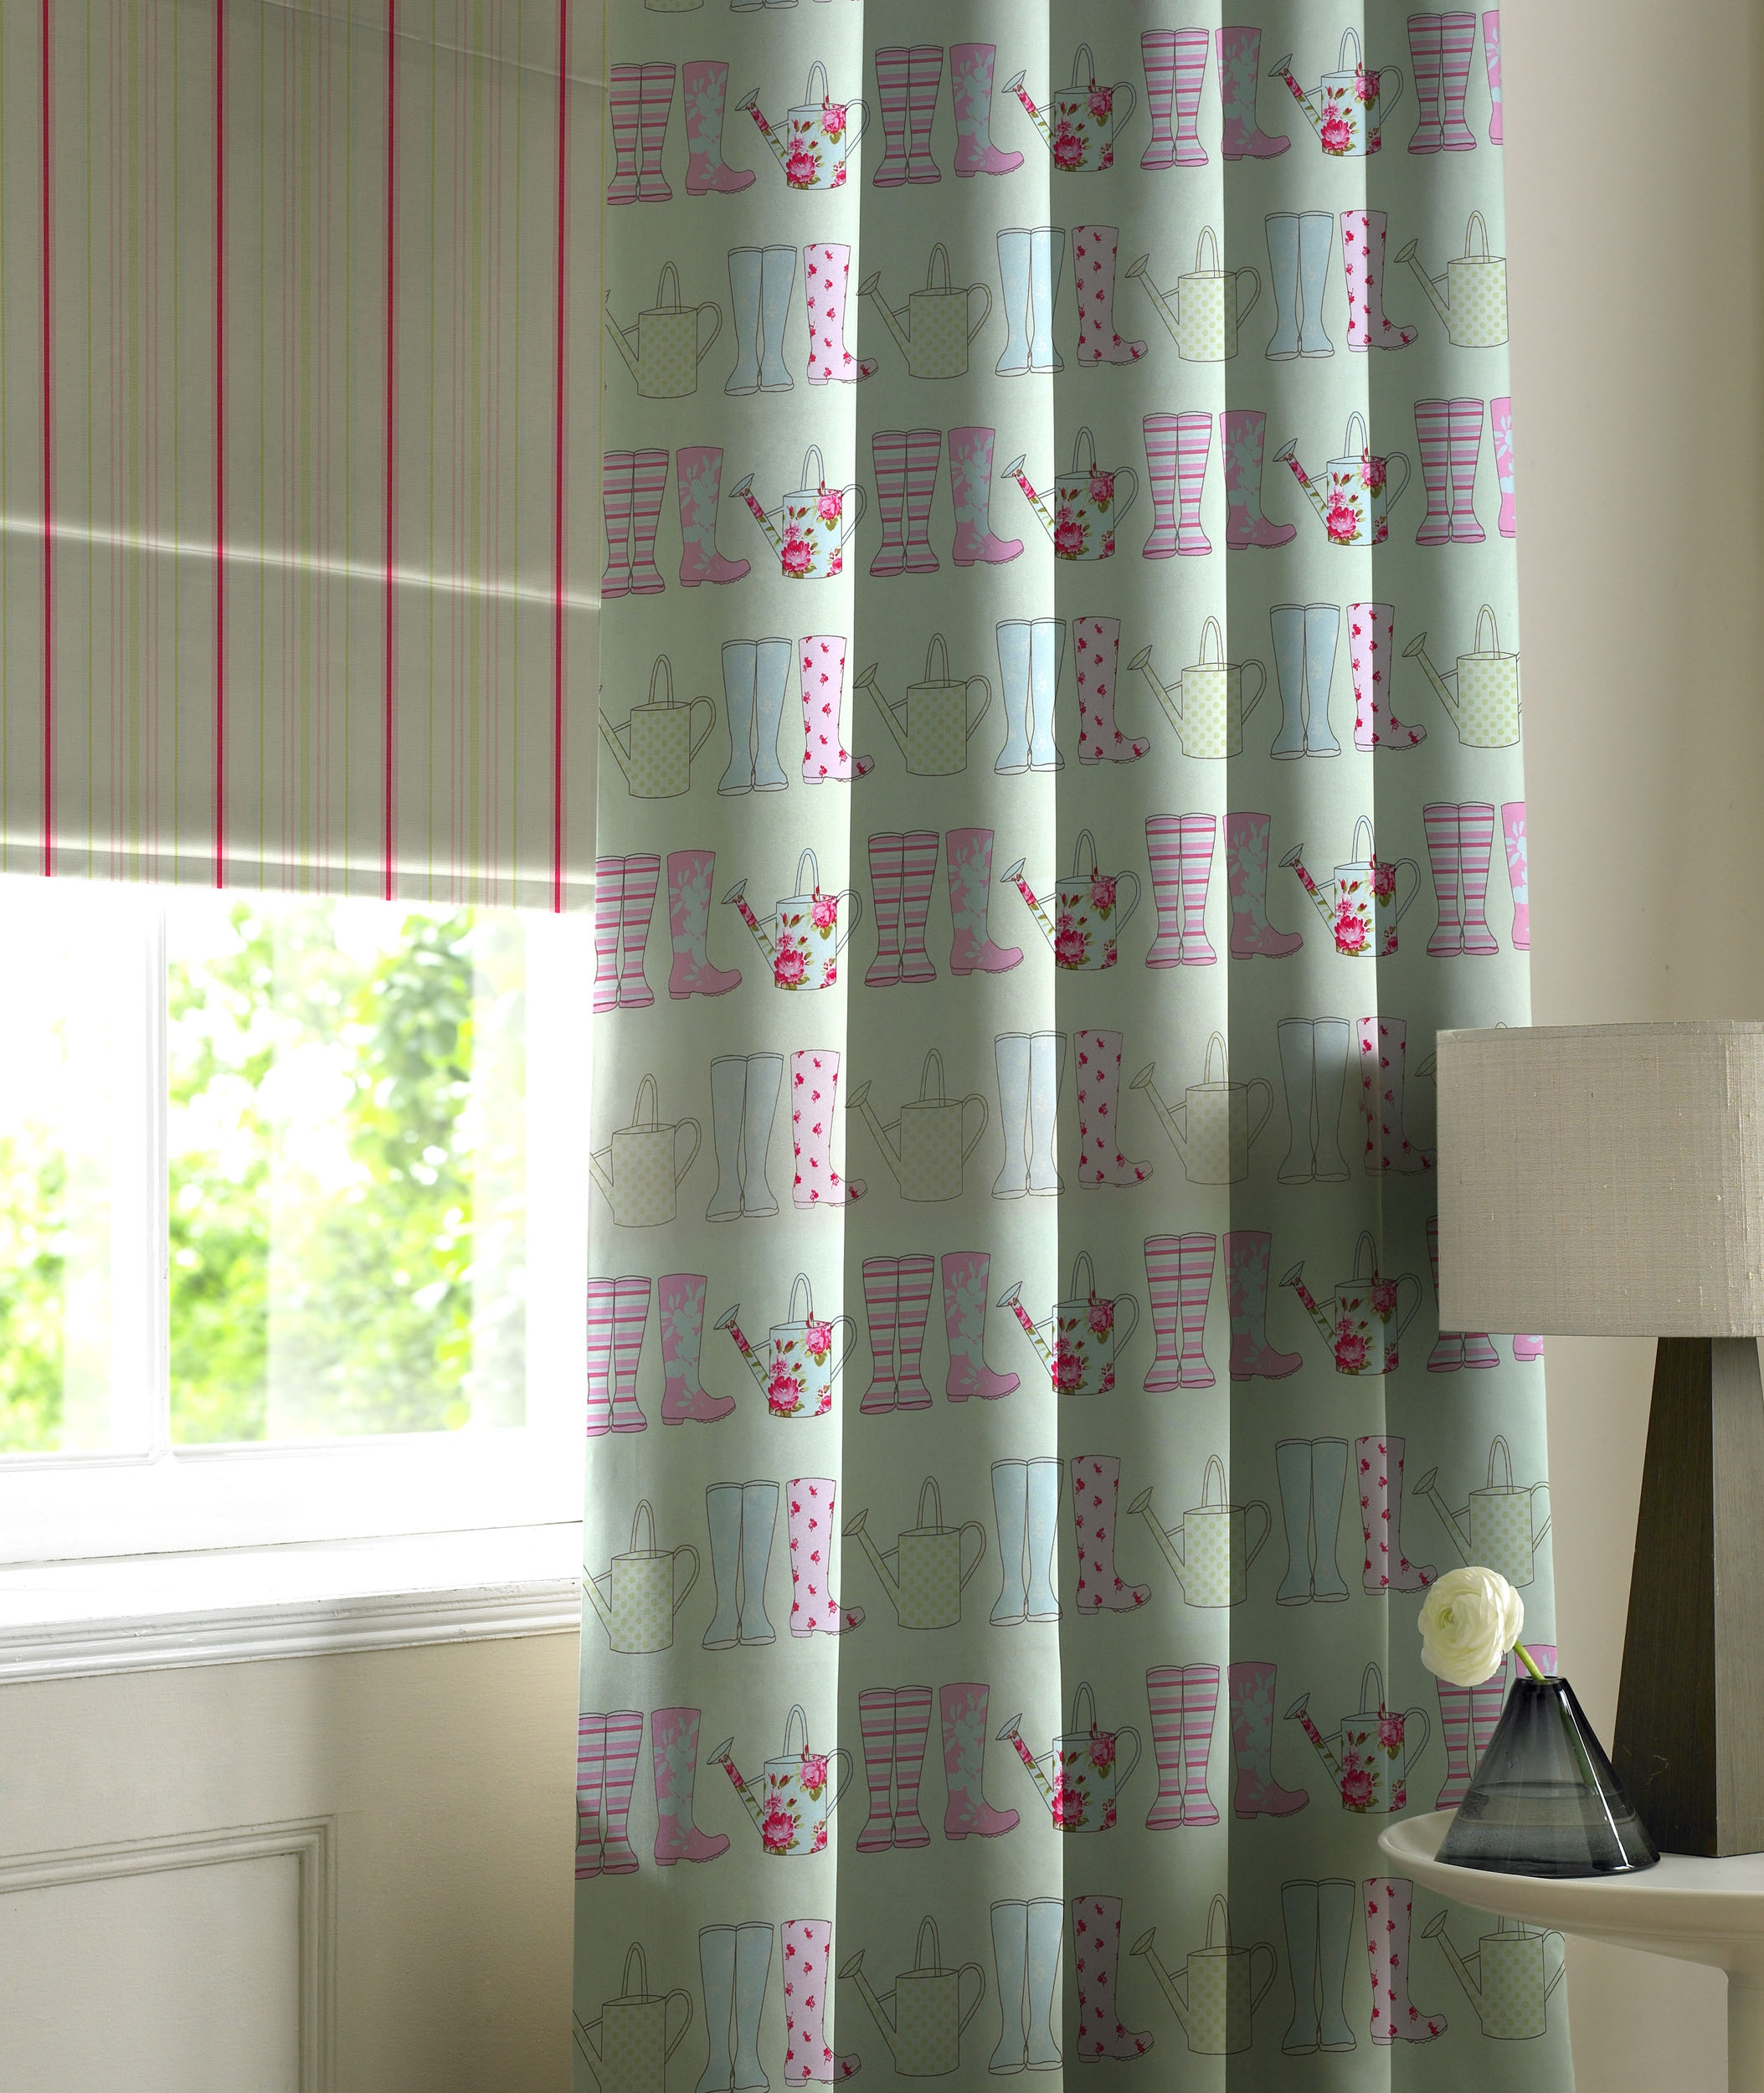 Blog Inside Matching Curtains And Roman Blinds (Image 1 of 15)